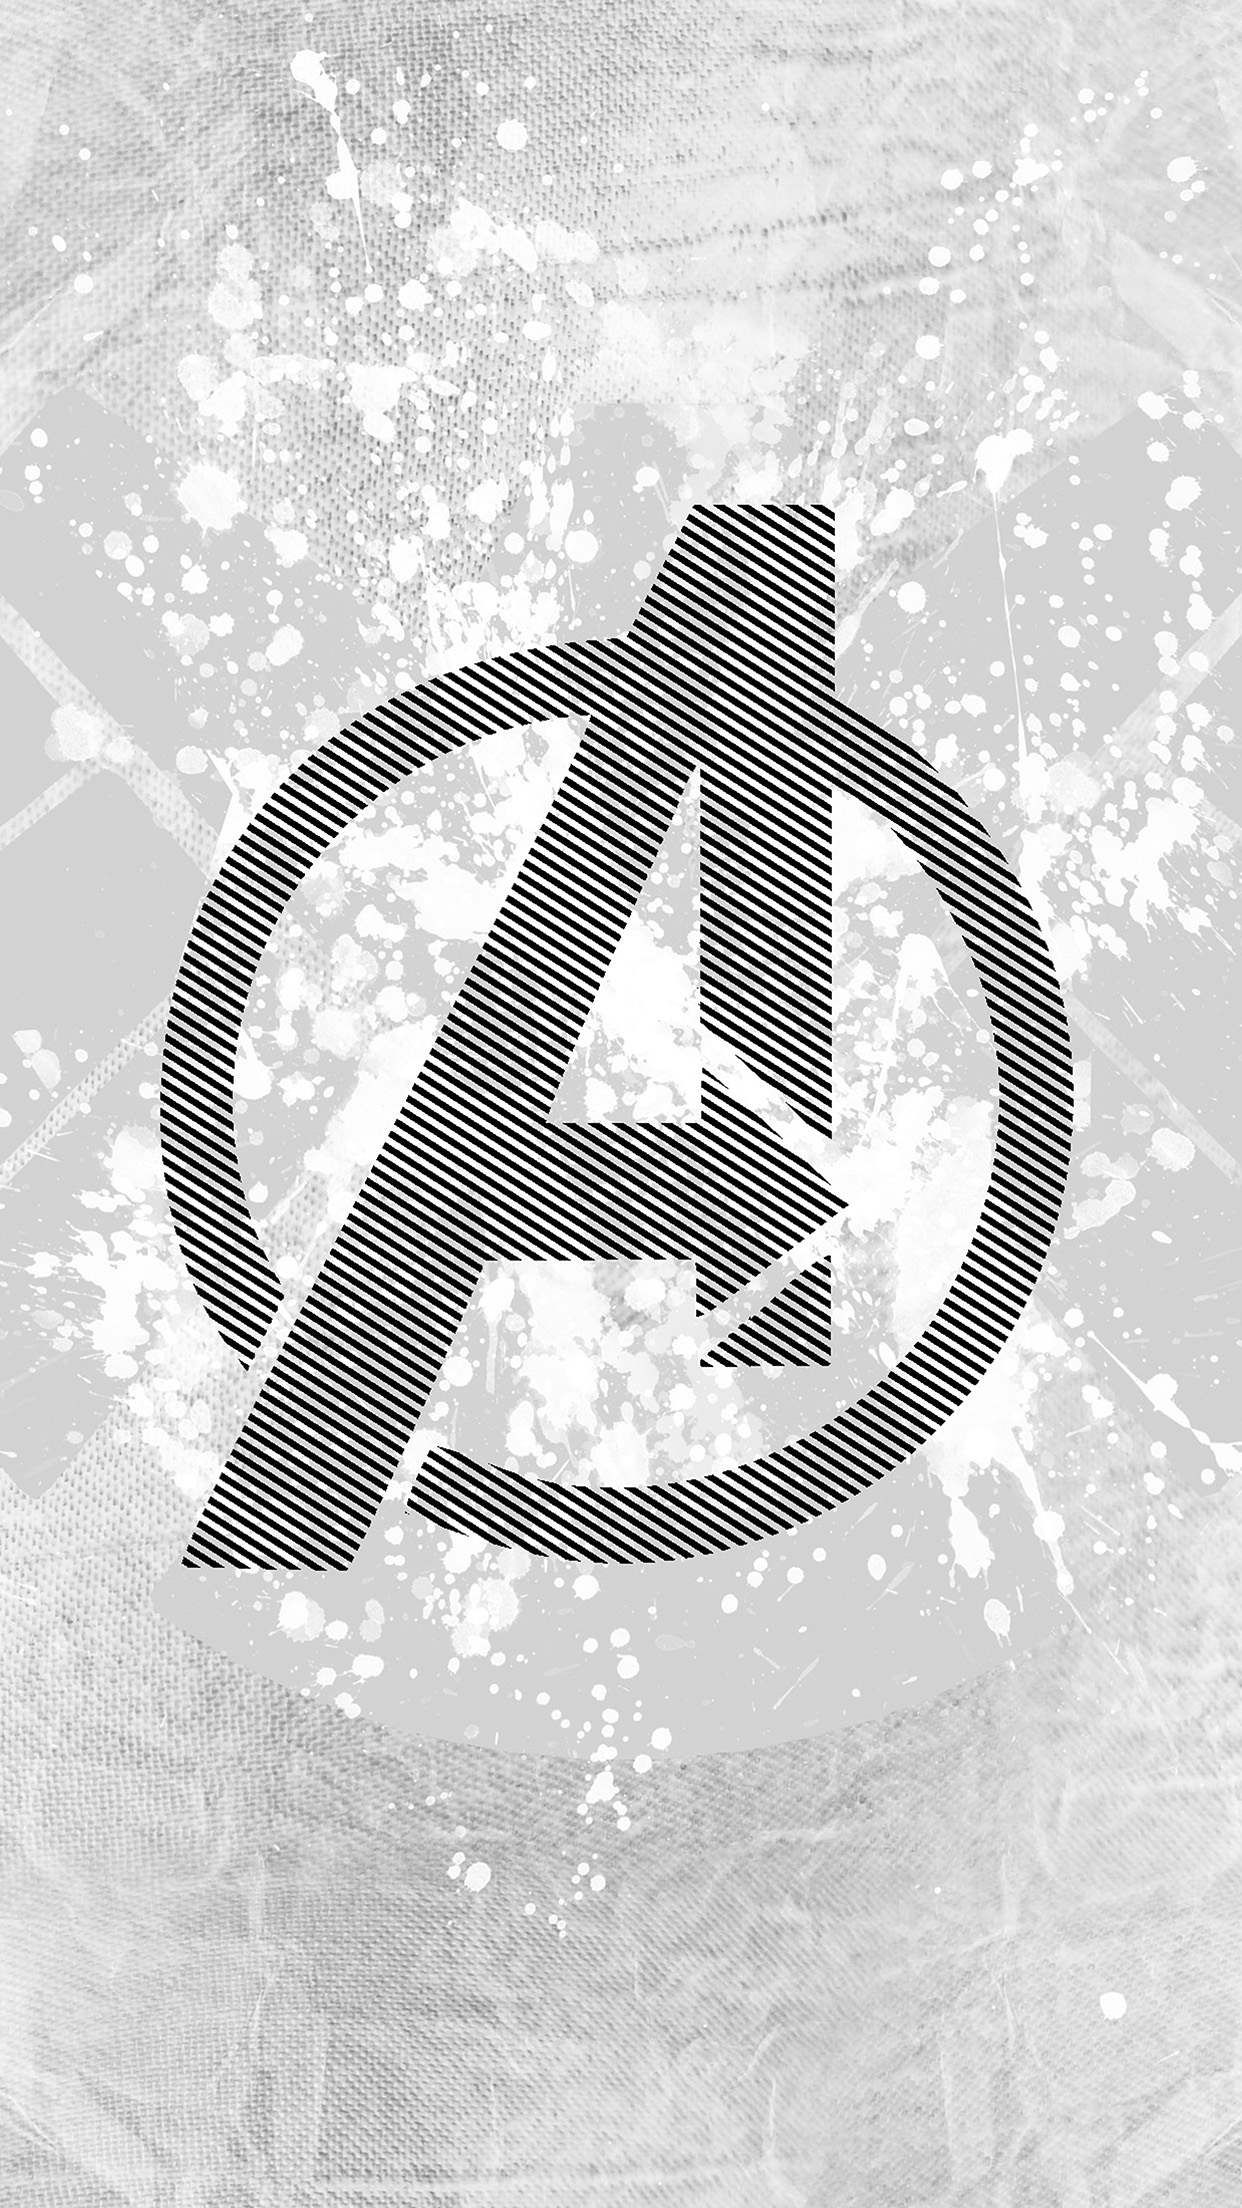 Download Mega Collection Of Cool Iphone Wallpapers Marvel Wallpaper Hd Marvel Iphone Wallpaper Avengers Wallpaper Avengers logo wallpaper hd 4k download